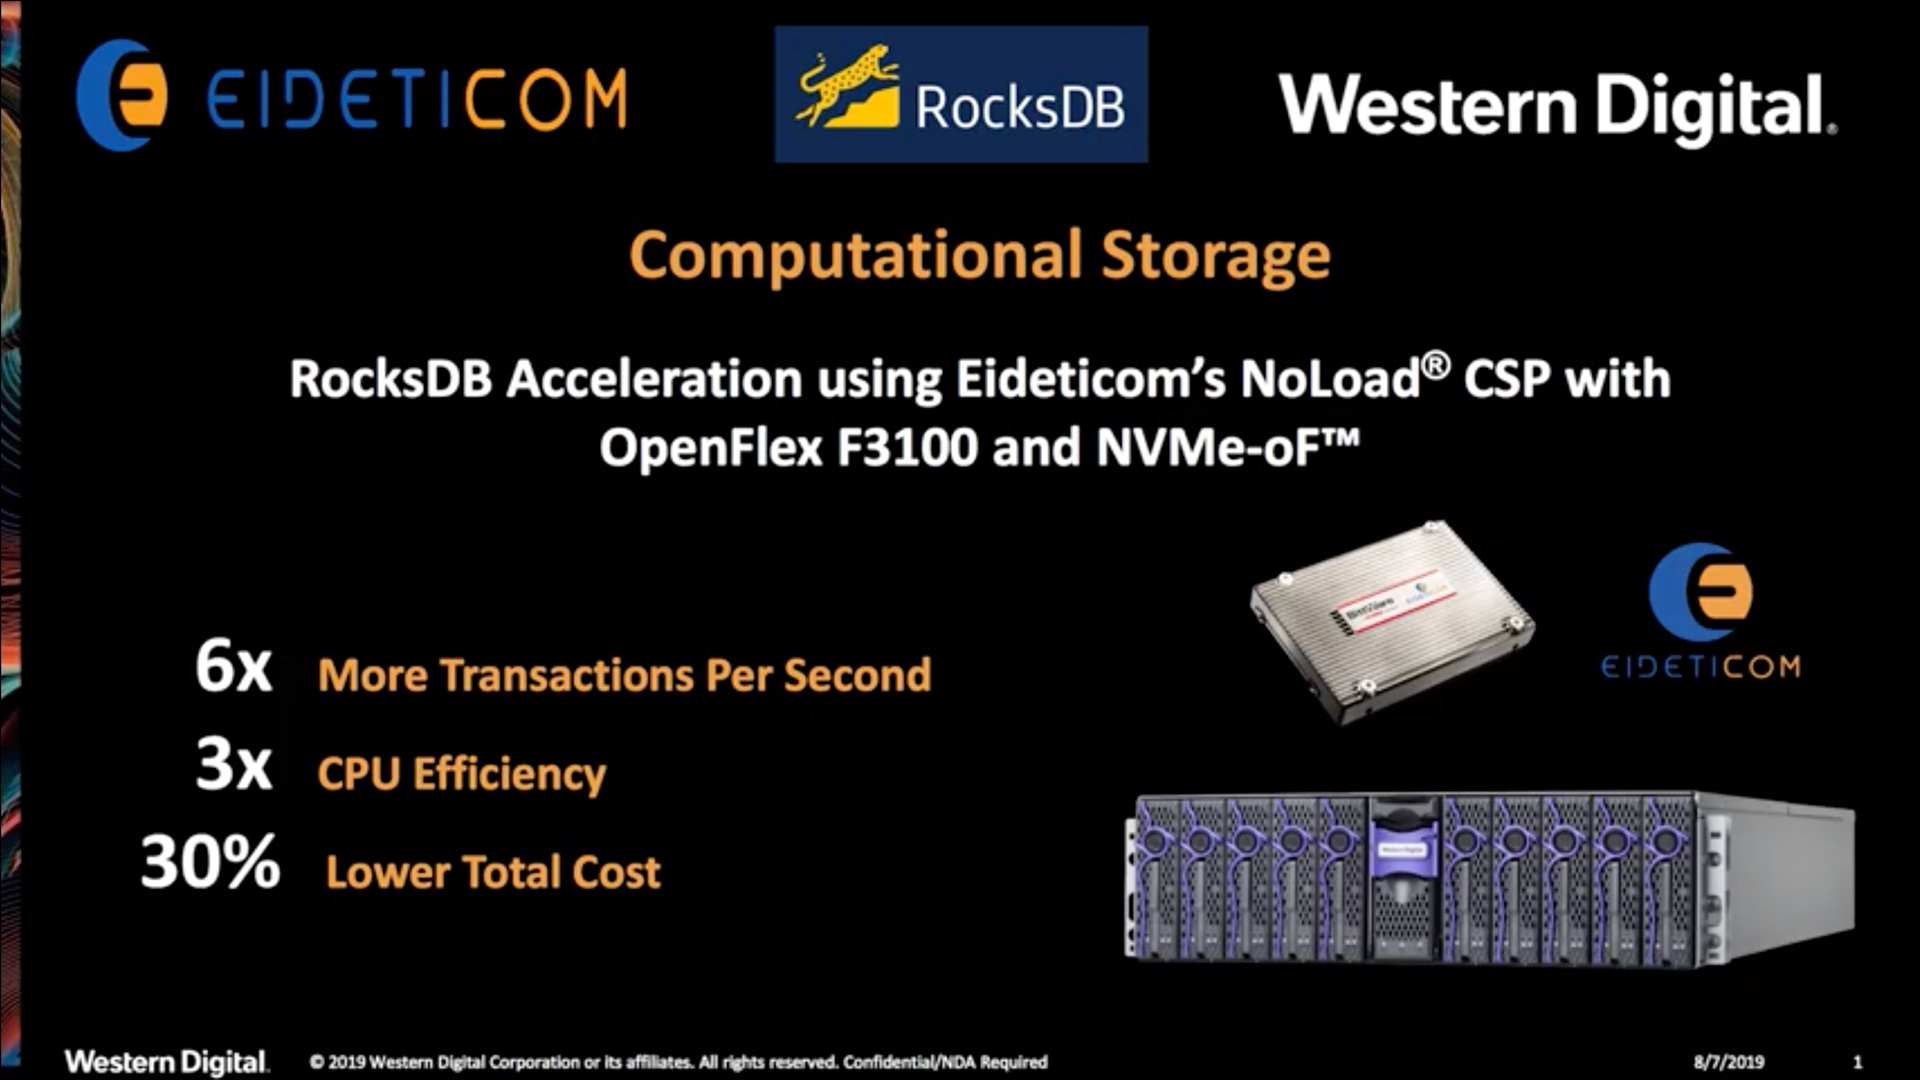 RocksDB Acceleration using Eideticom's NoLoad® CSP with OpenFlex F3100 and NVMe-oF™